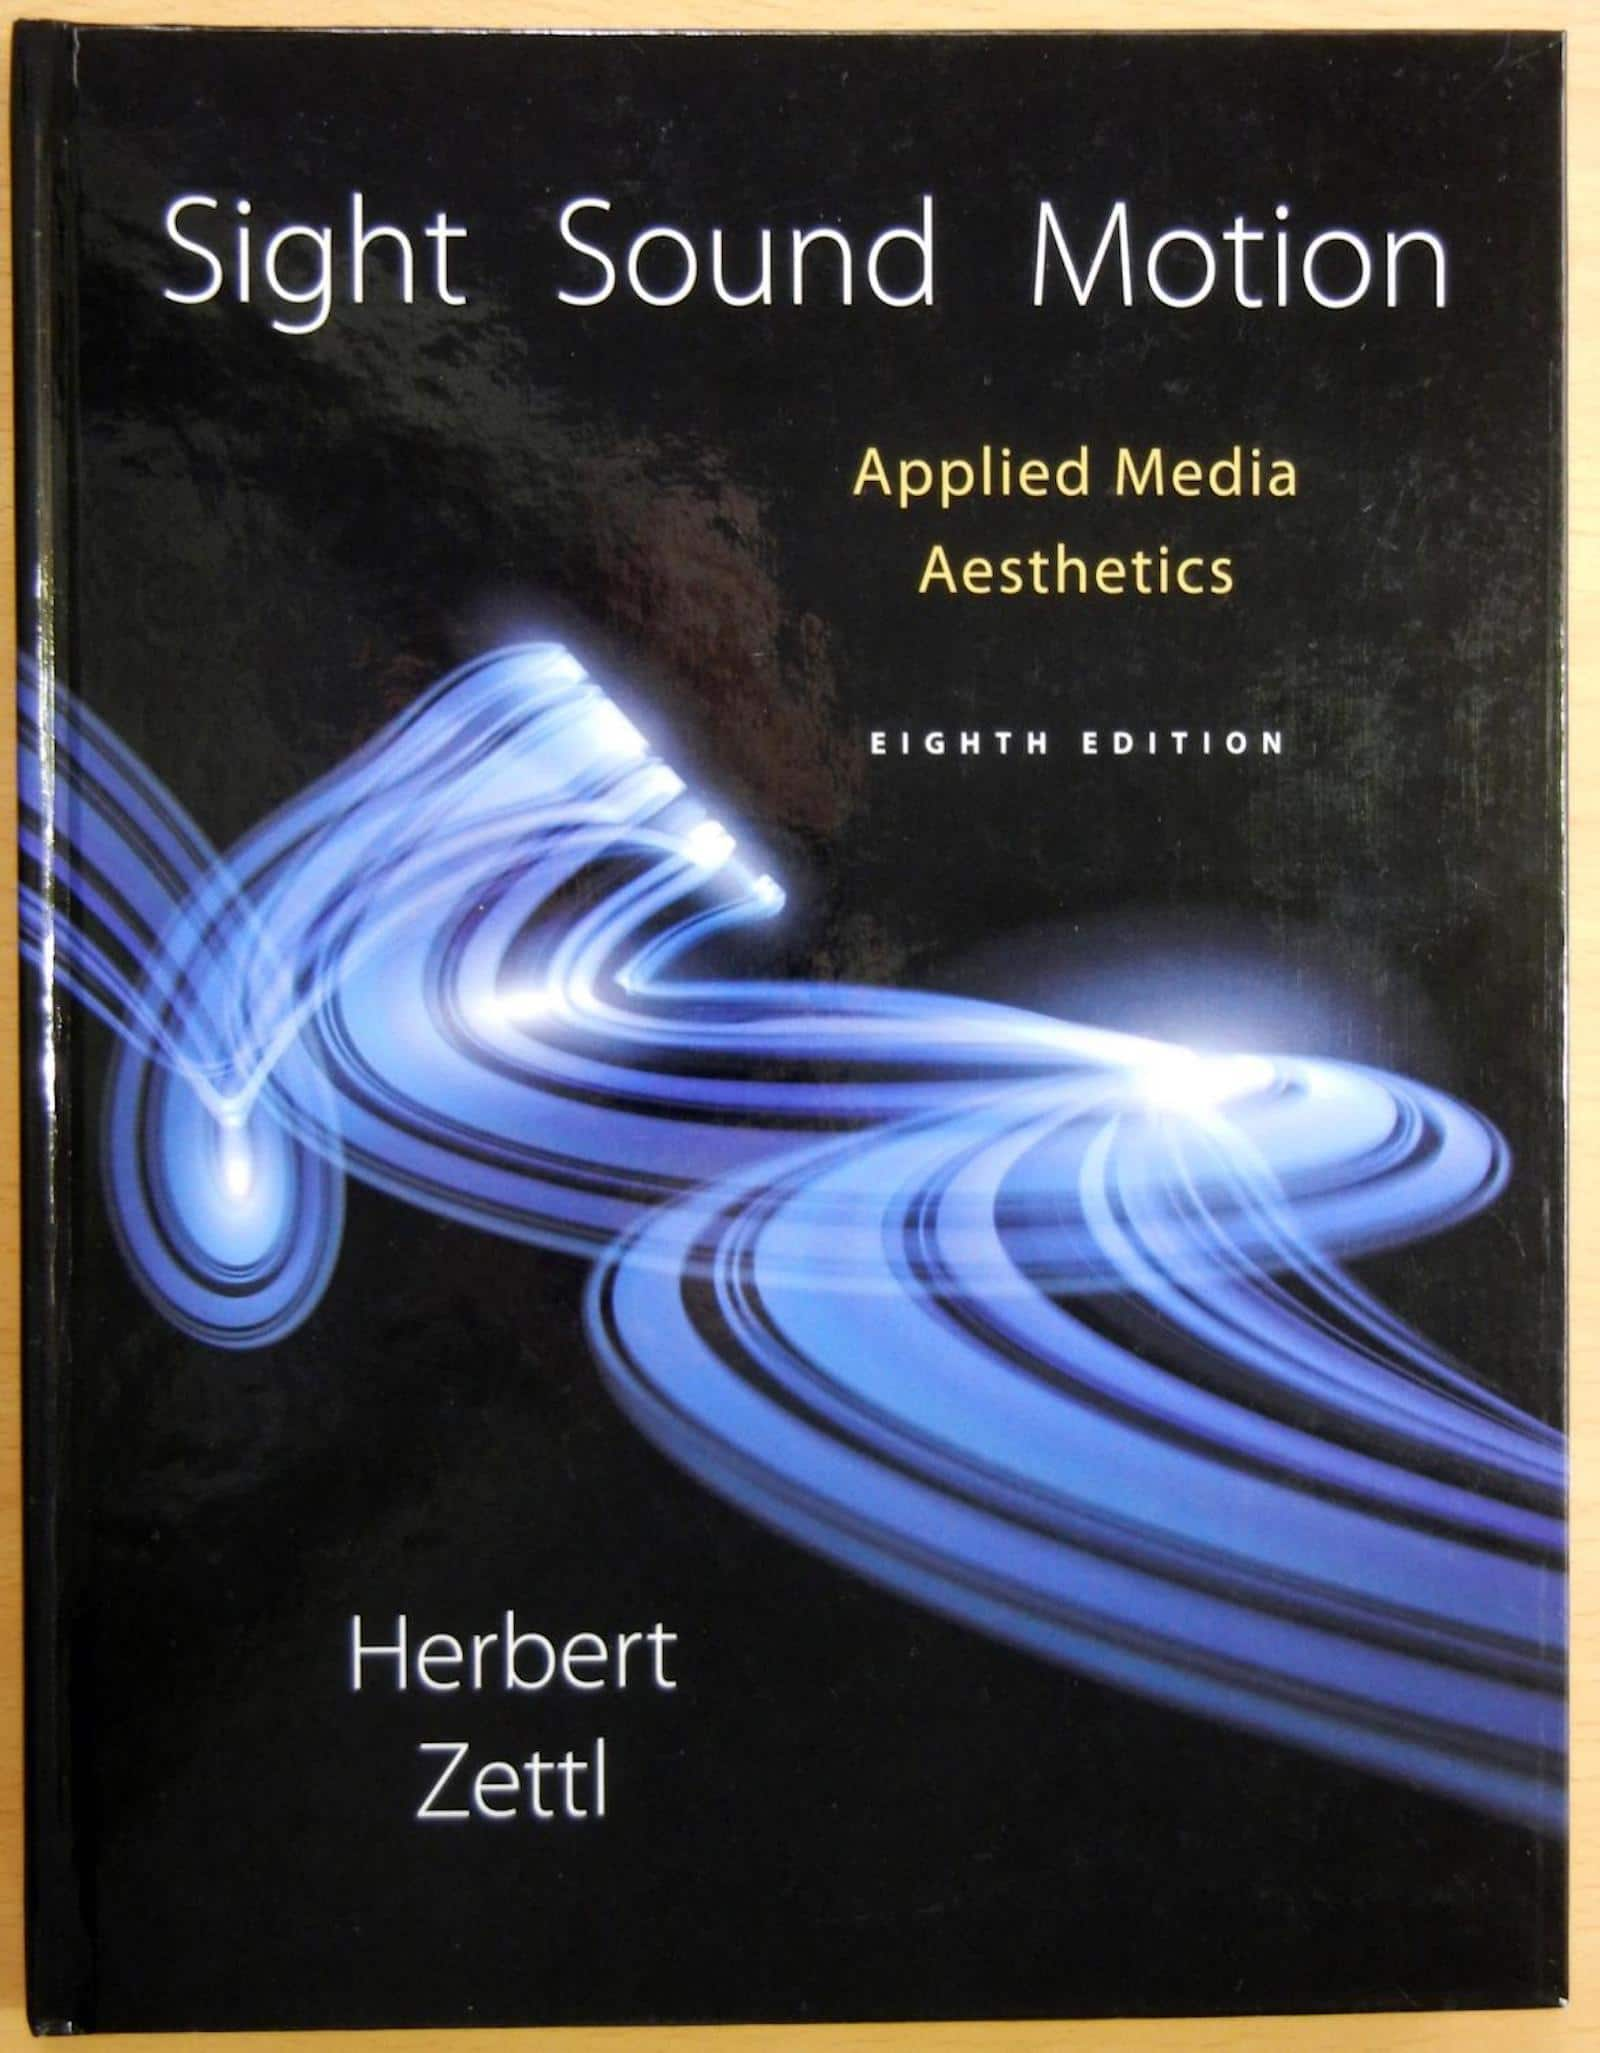 Essential Cinematography Books - Sight Sound Motion